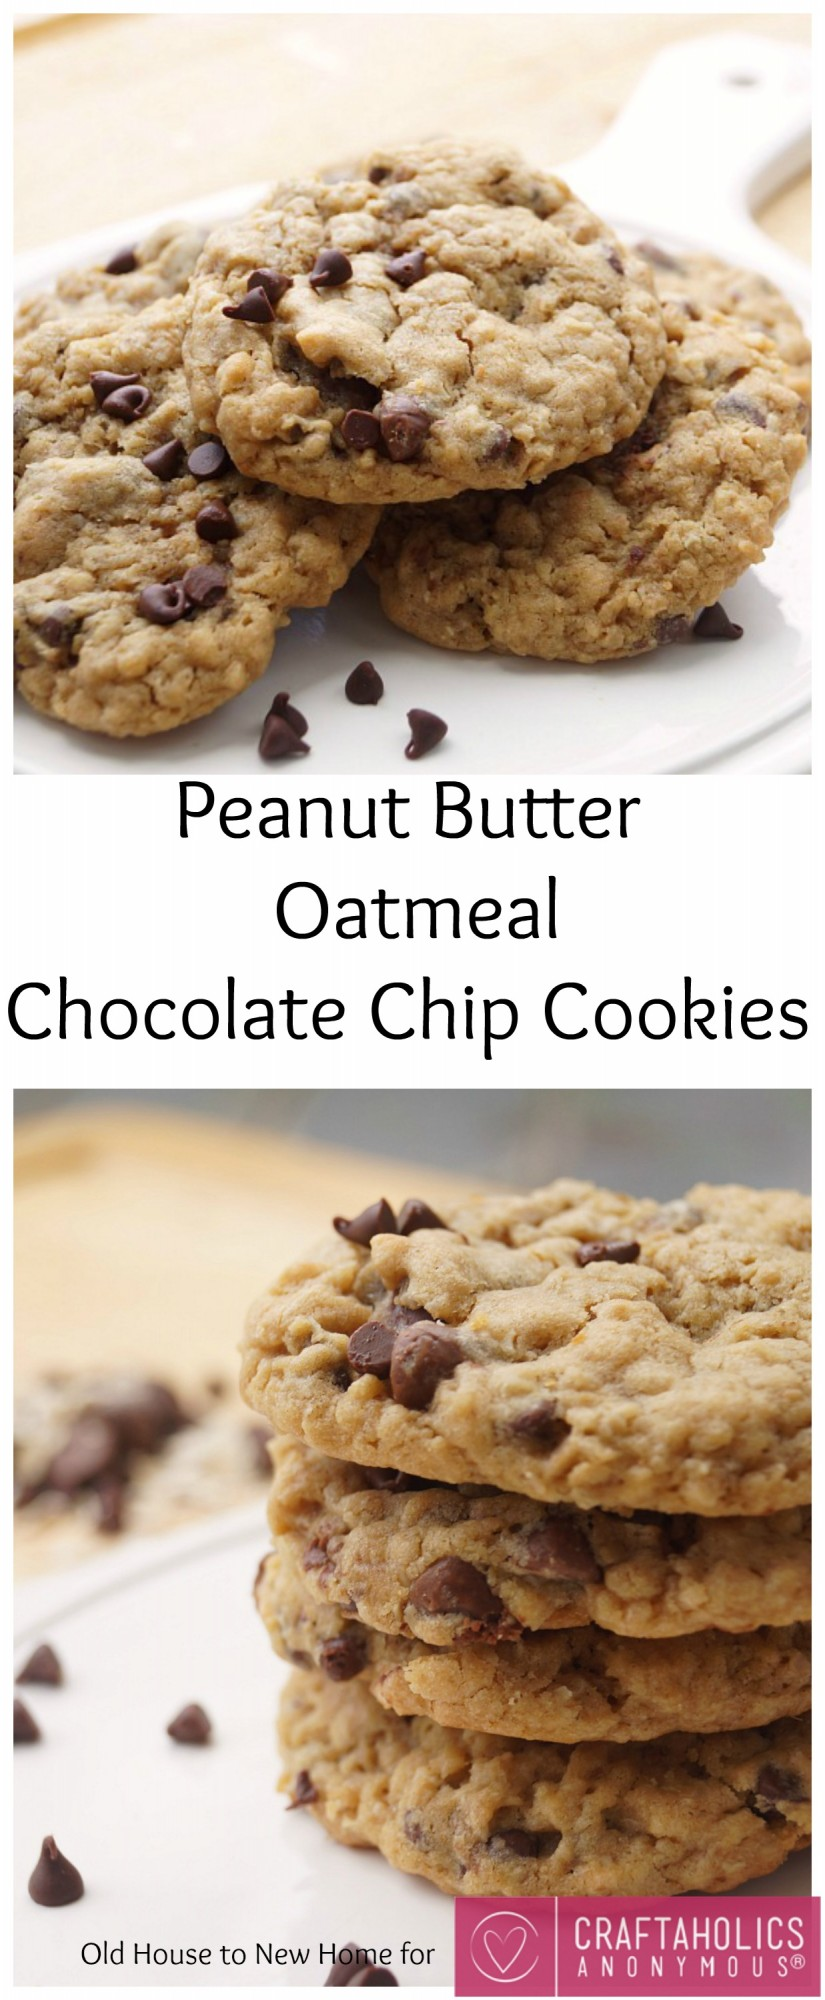 ... Anonymous® | Peanut Butter Oatmeal Chocolate Chip Cookies